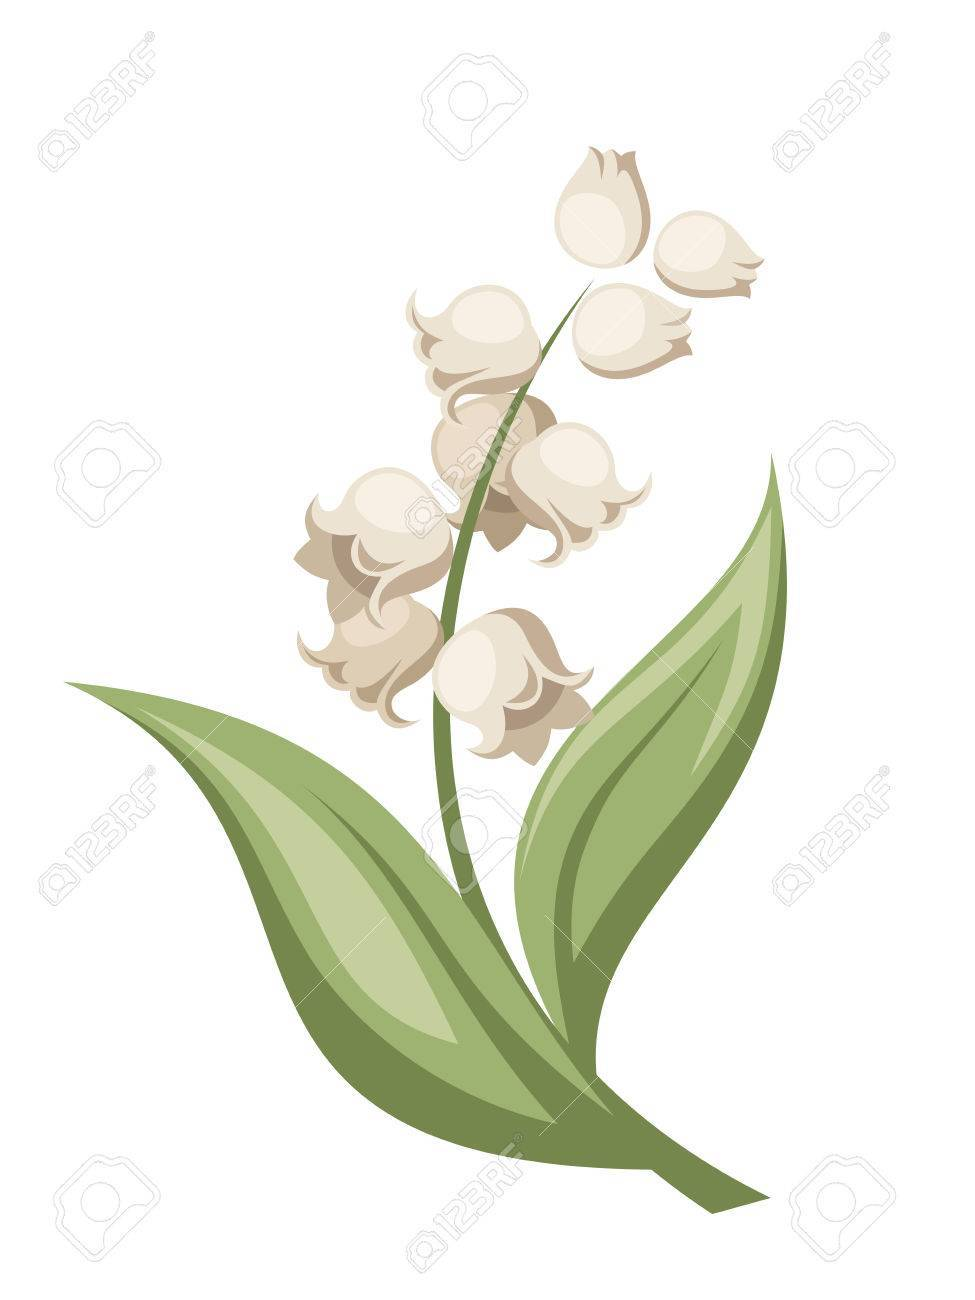 Lily of the valley flower clipart 3 » Clipart Portal.